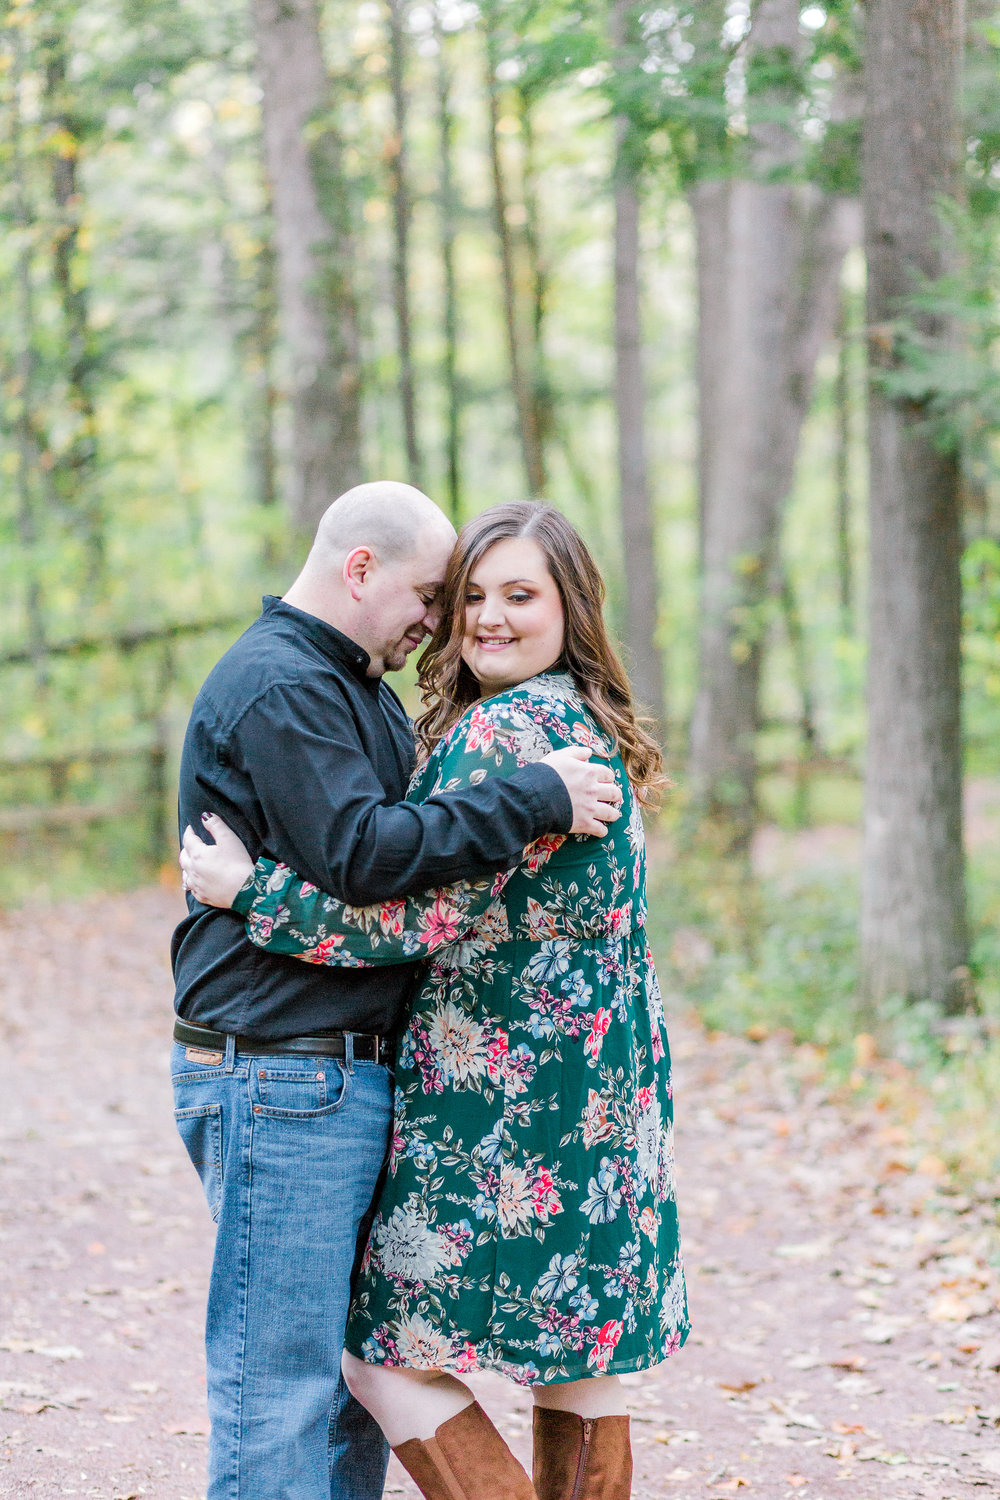 Jacobsburg State Park Nazareth Pennsylvania Woodsy Fall Engagement Session wedding and lifestyle photographer Lytle Photo Co (56 of 64).jpg